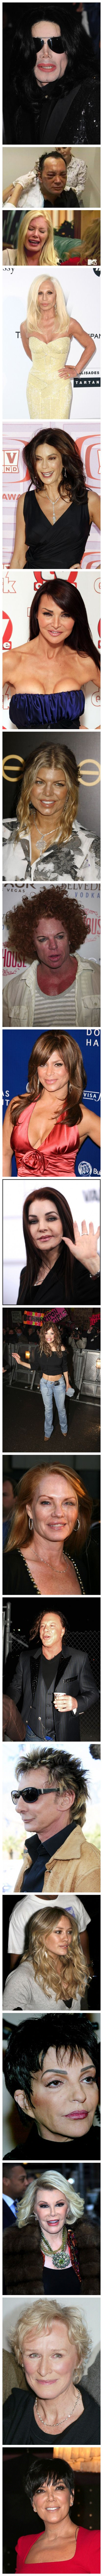 Bad Celebrity Plastic Surgery Disasters